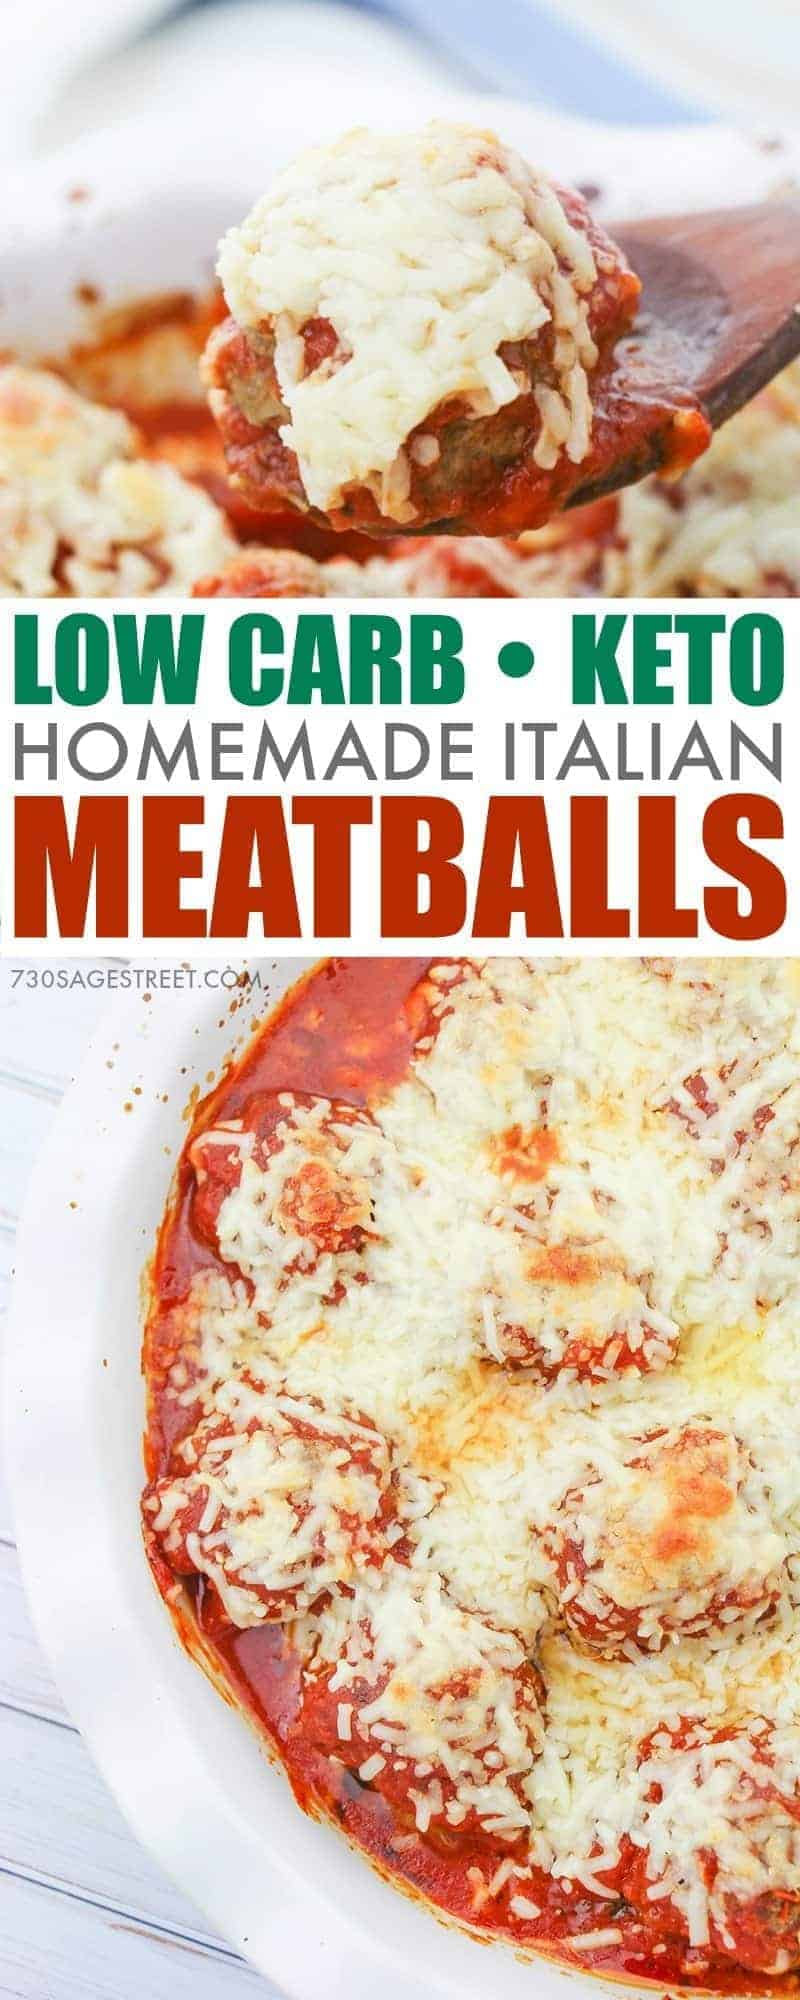 Italian Style Low Carb Keto Meatballs Parmesan